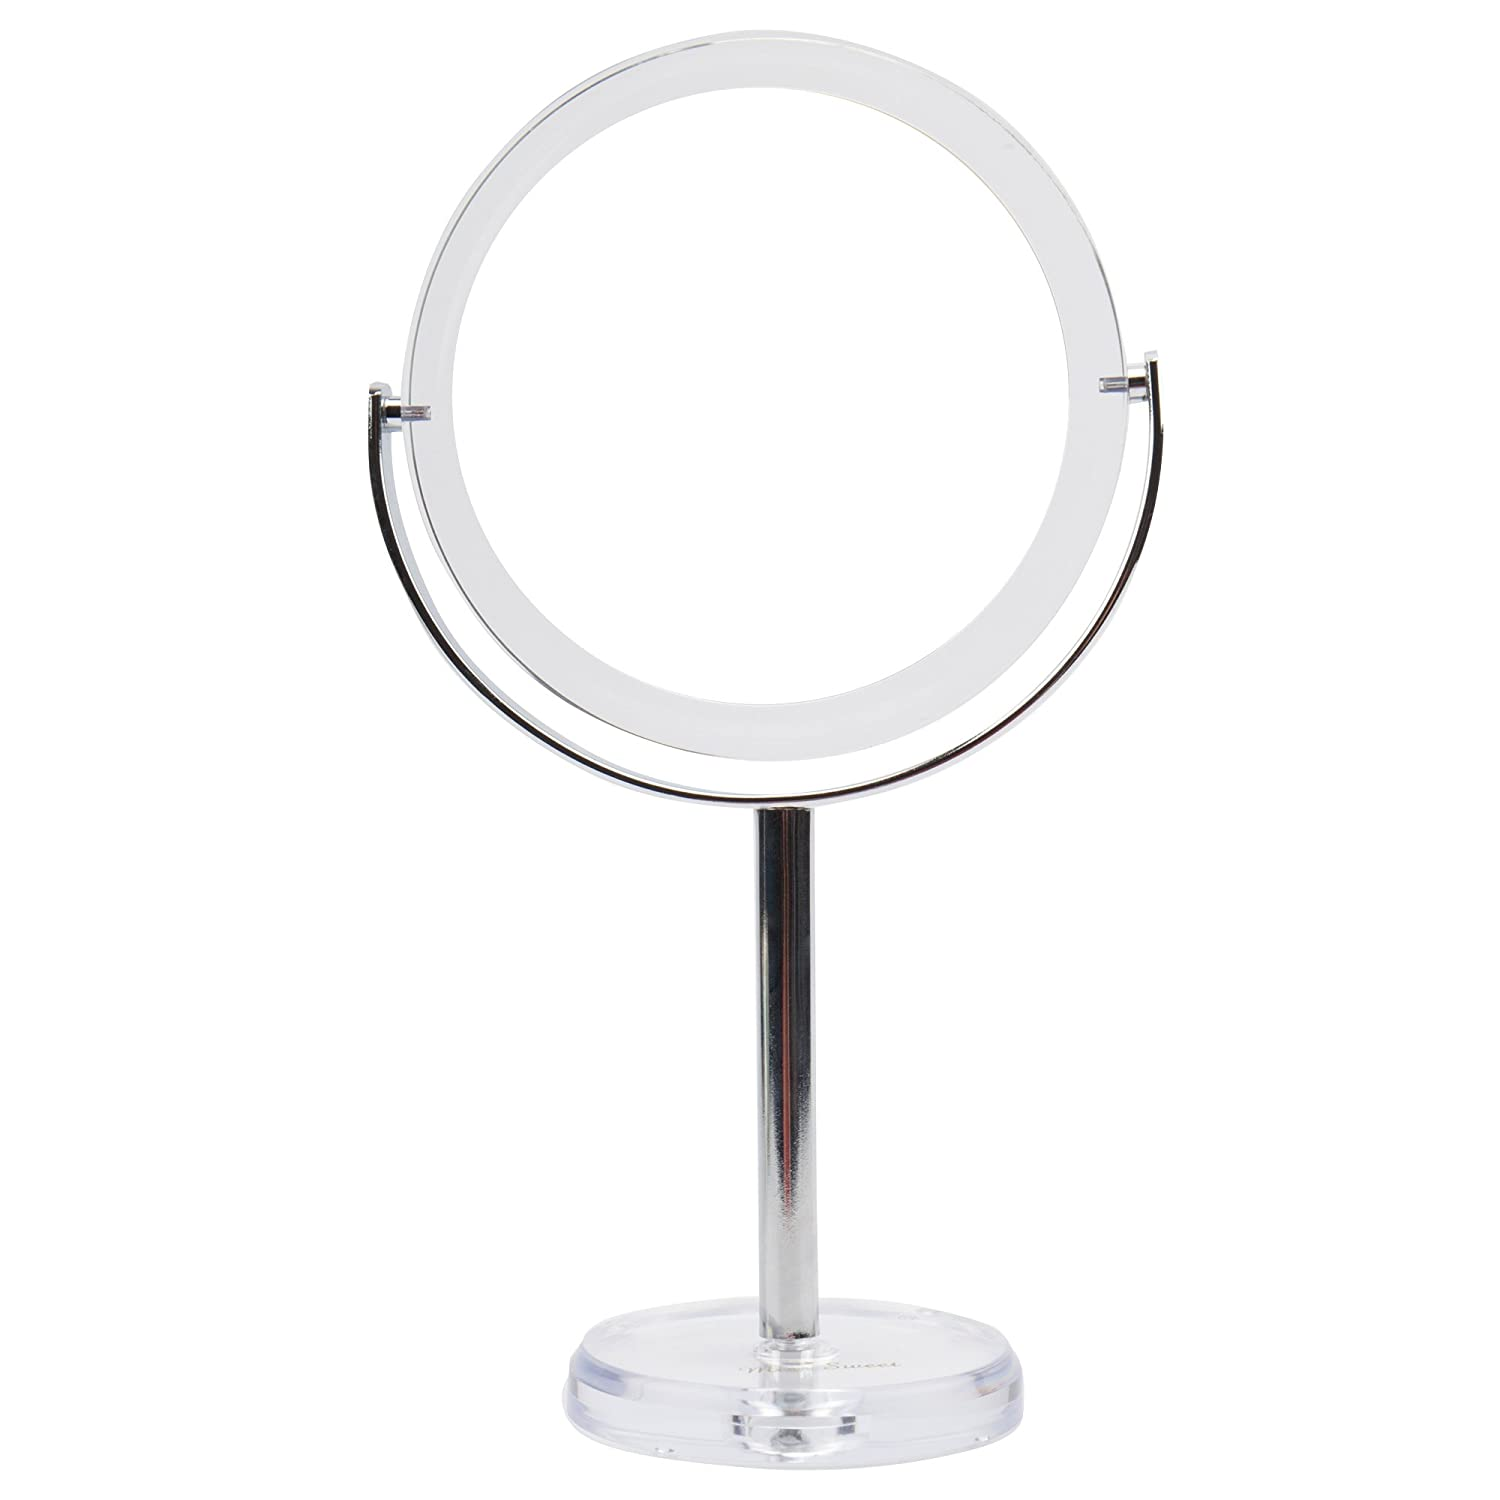 Miss Sweet Tabletop Makeup Mirror Vanity Mirror with 10X Magnification for Beauty Makeup (True image& 10X)